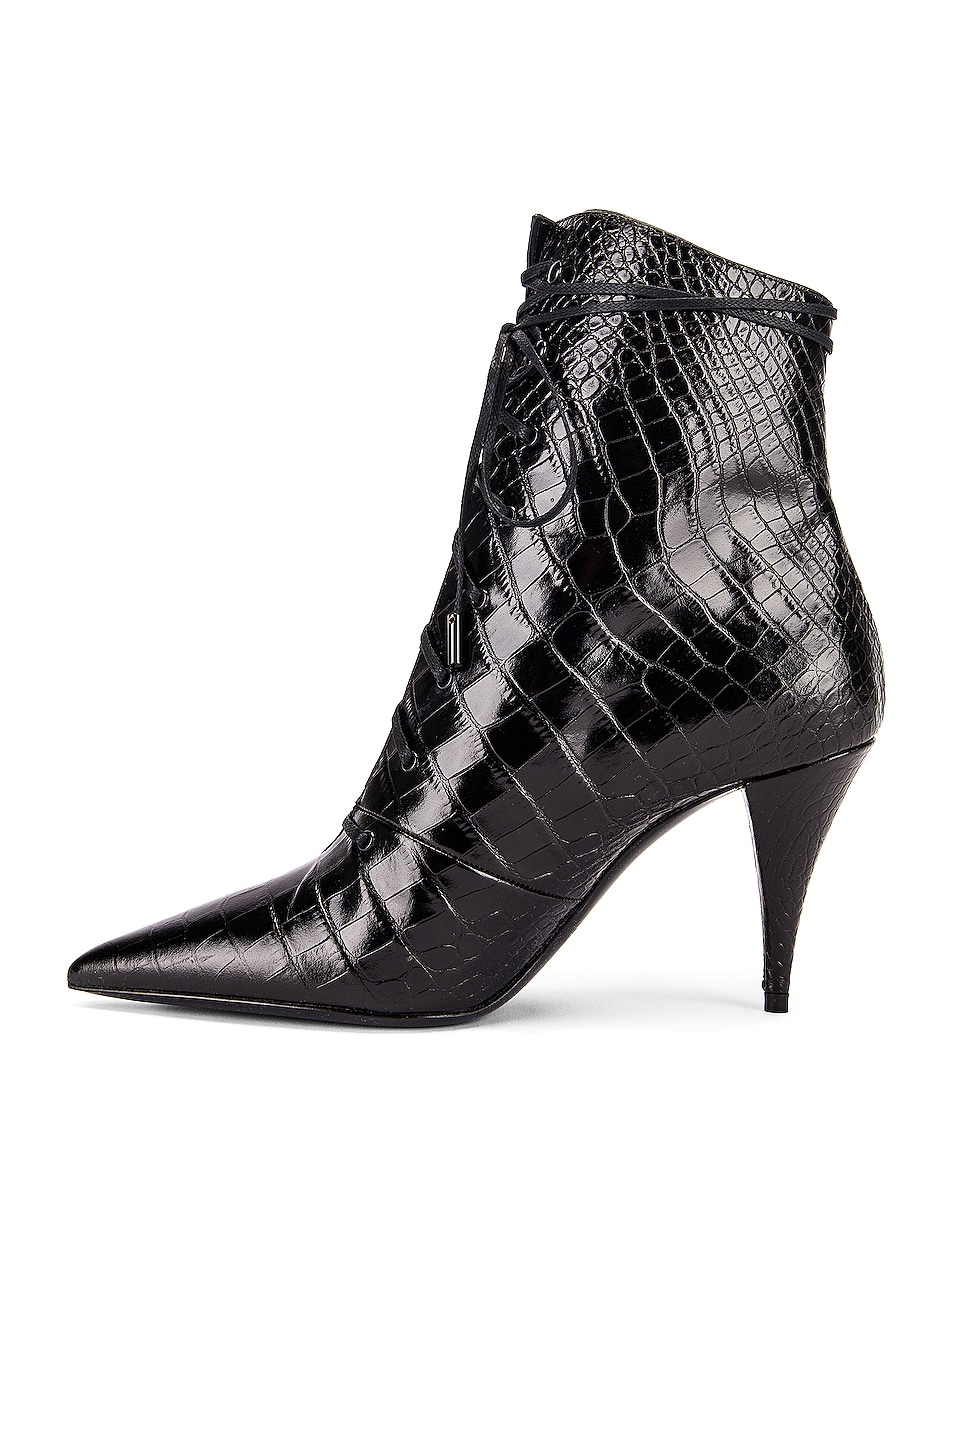 Image 5 of Saint Laurent Kiki Lace Up Booties in Black